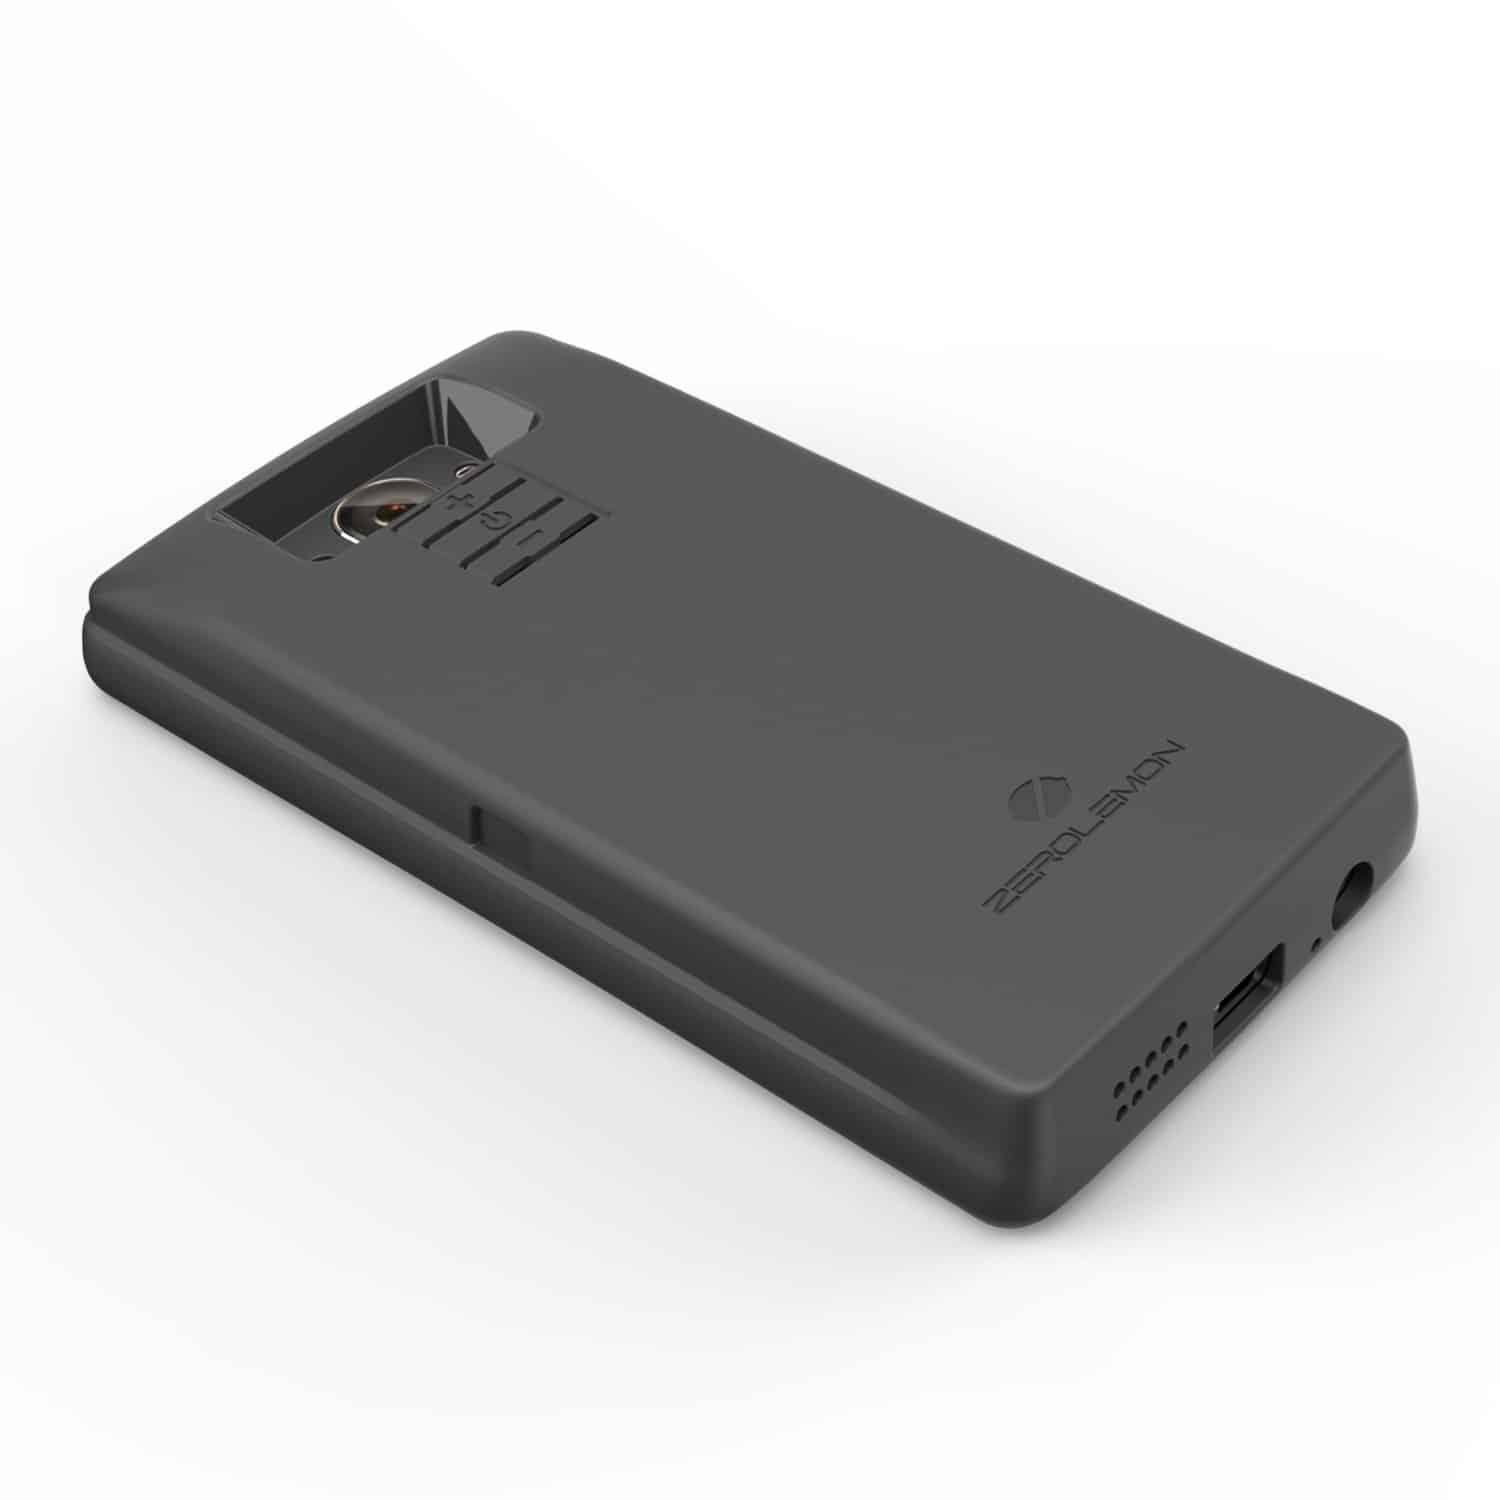 ZeroLemon LG G4 8500 mAh Battery 2 KK